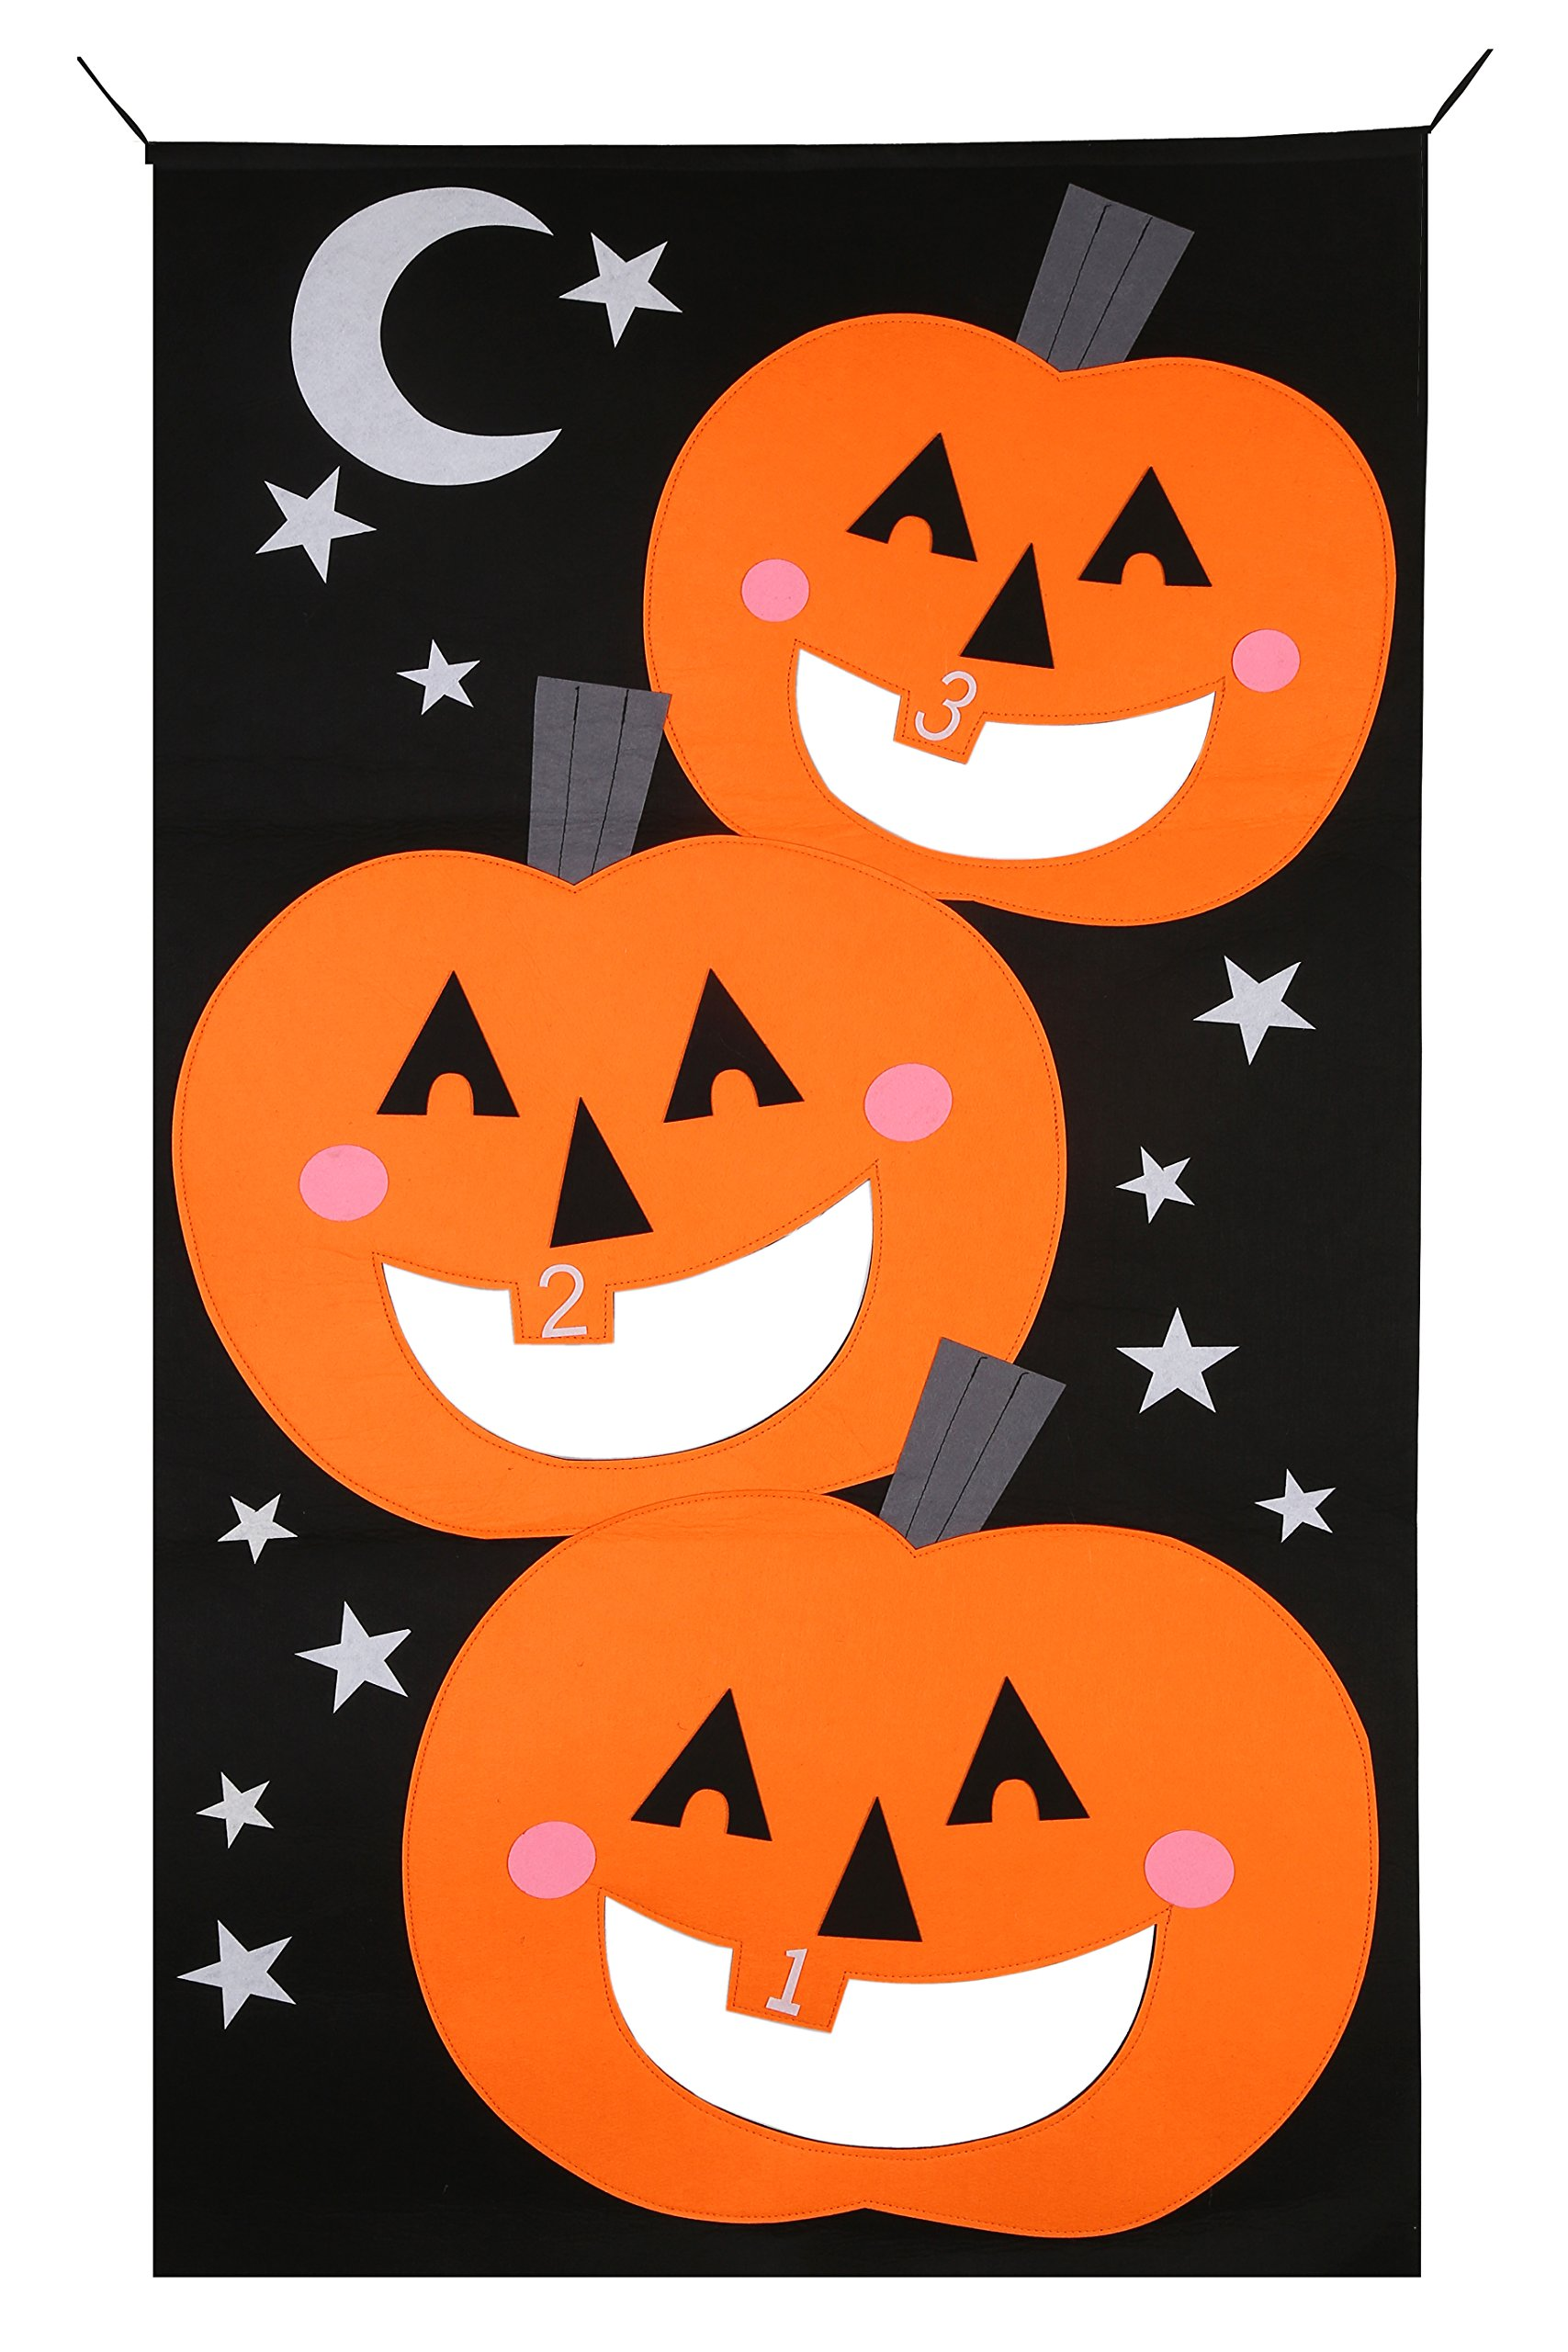 Pumpkin Bean bag Toss Game with 3pcs Bean bags party games for kids Pumpkin banner Halloween Decorations or Treat Banner Family Friendly Party 30 x 54 inches (black orange))